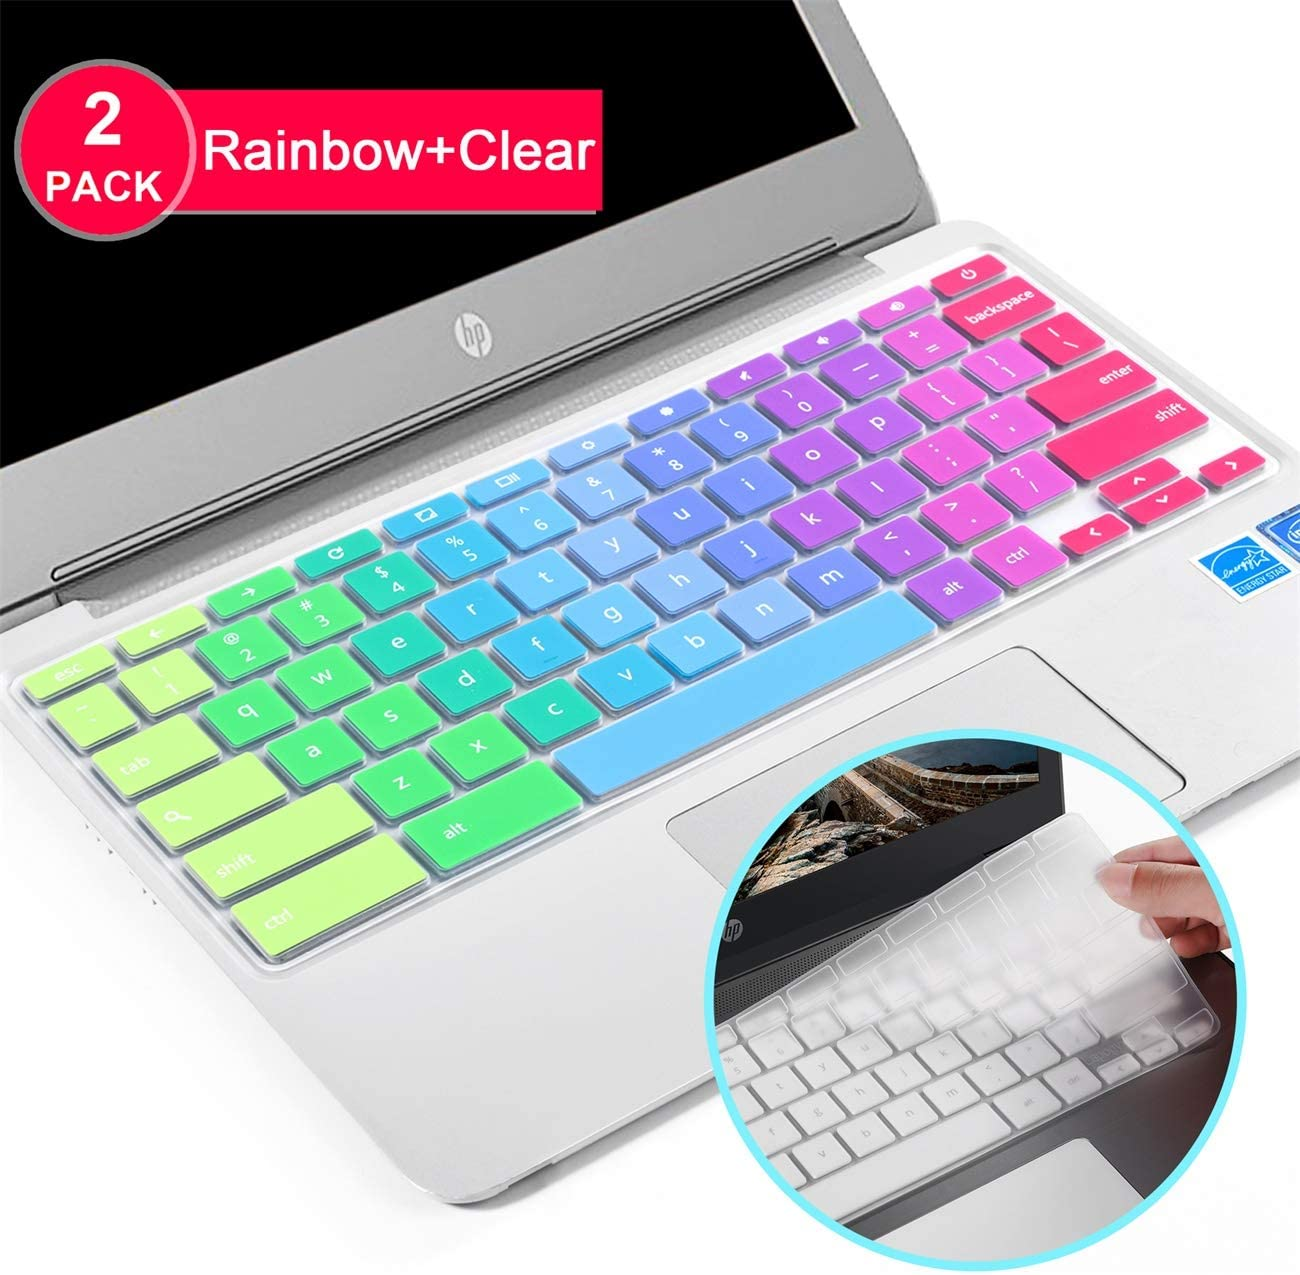 "Lapogy[2pcs] Premium Ultra Thin Keyboard Cover Skin for ASUS Chromebook Flip C434TA-DSM4T 2-in-1 Laptop 14"" Touchscreen,C434,C434TA/C425TA/C433TA,ASUS C434TA Accessories(Clear) Rainbow+TPU"